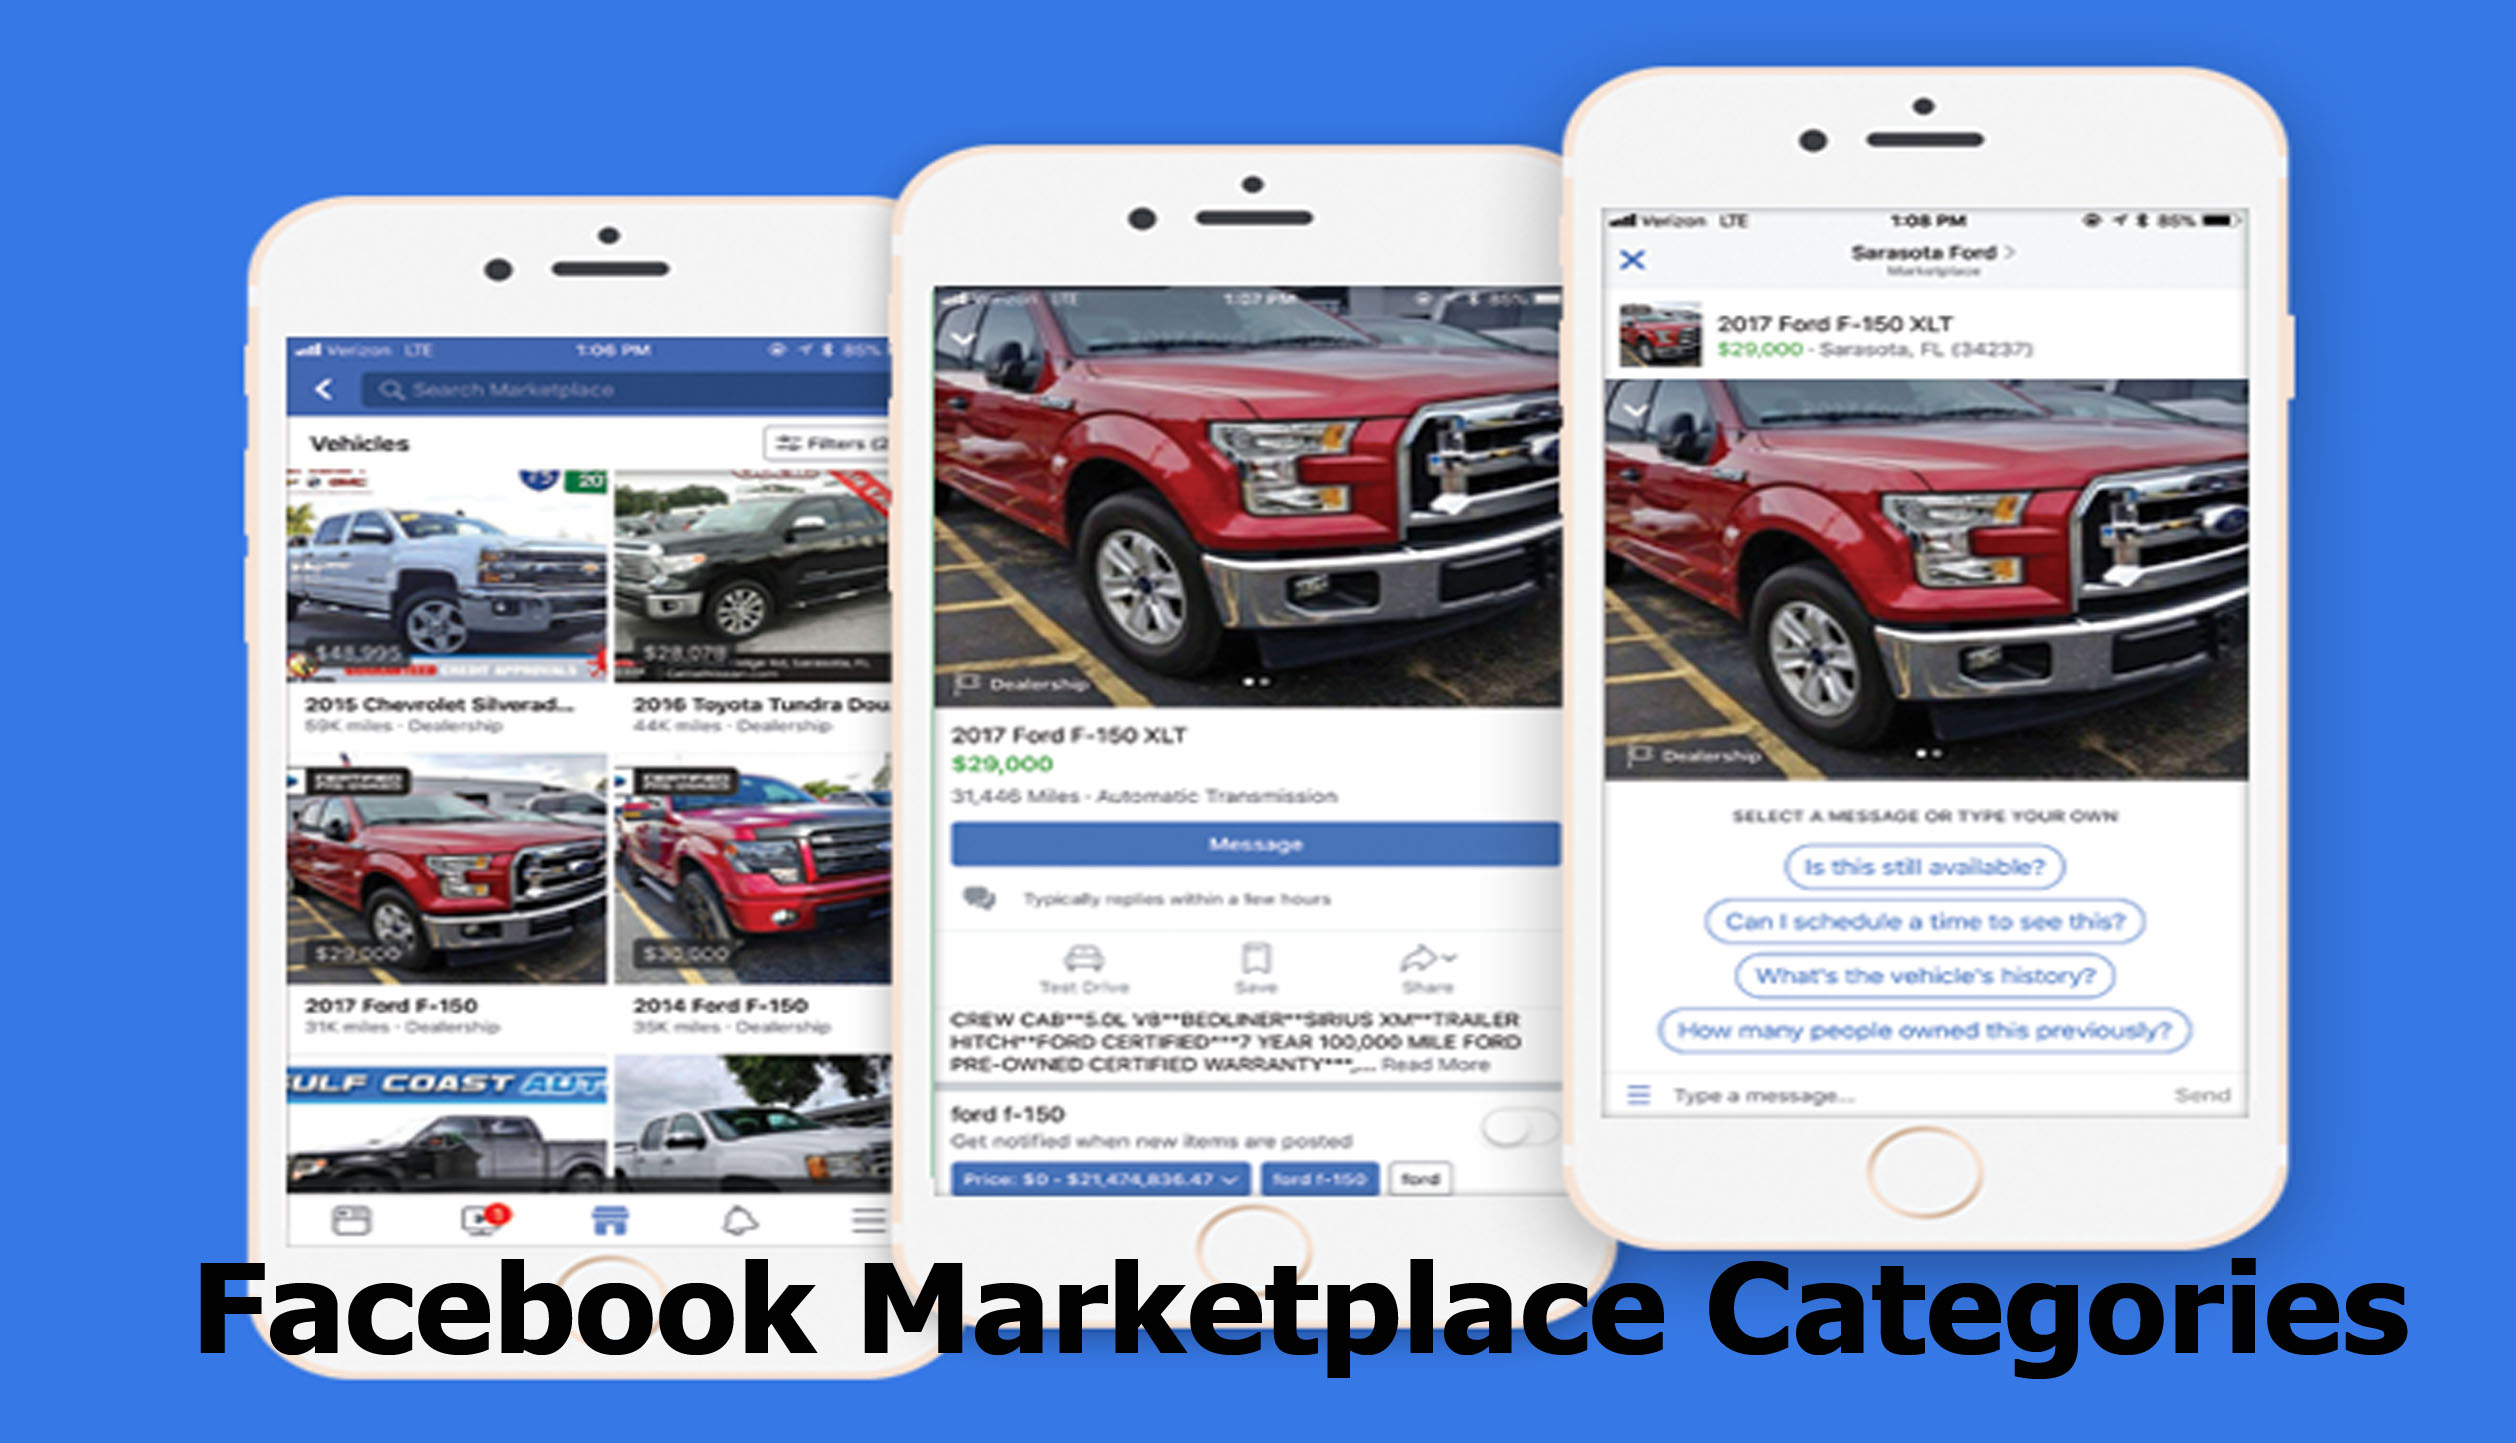 Facebook Marketplace Categories - What to Buy and Sell on Facebook Marketplace